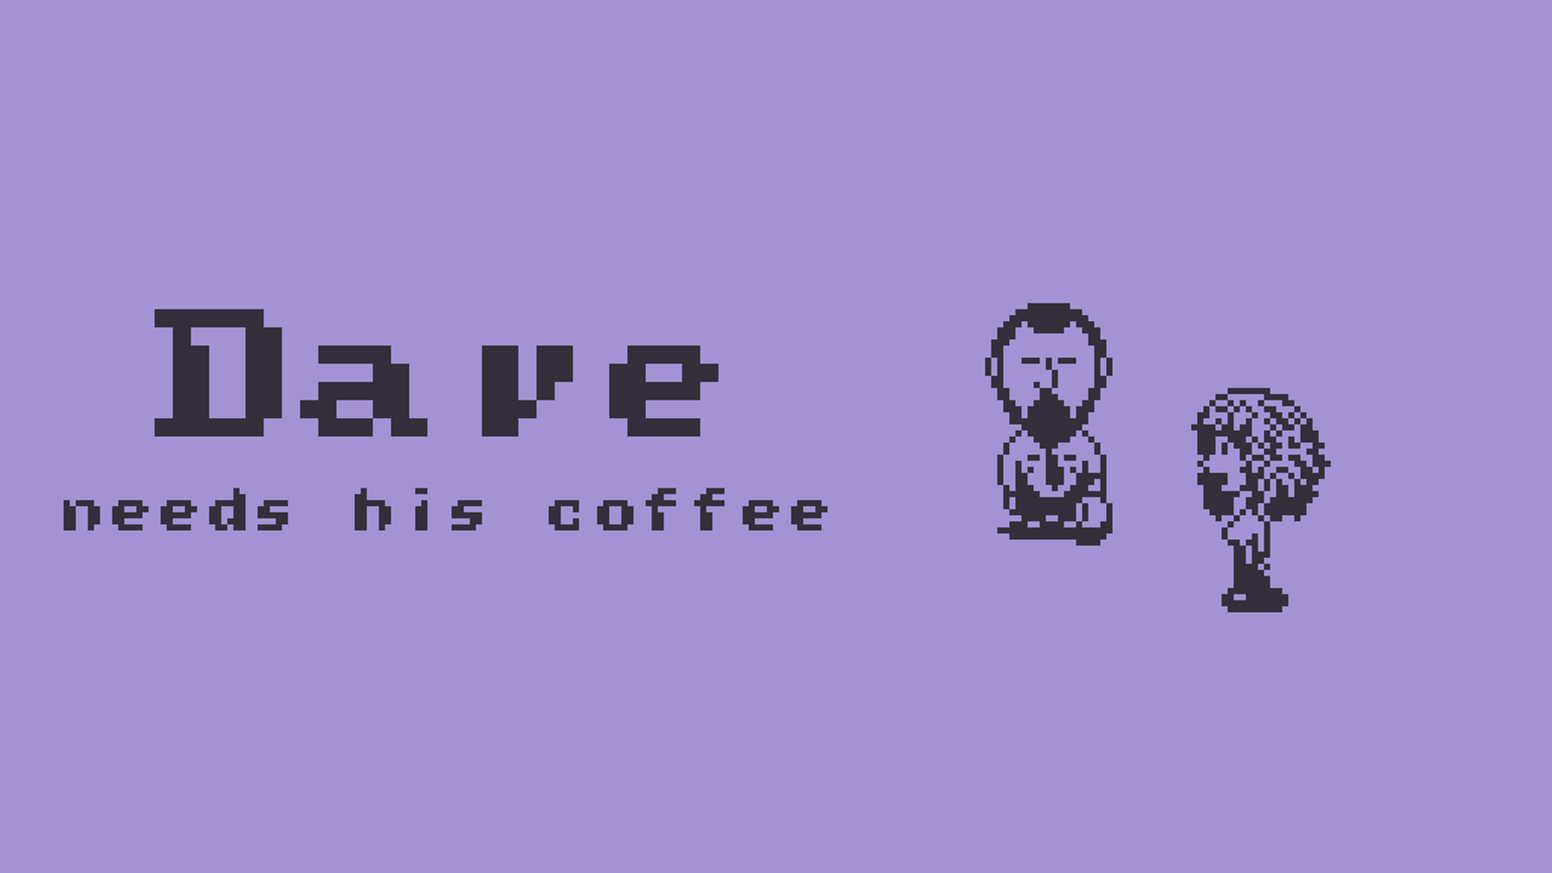 Dave-Man. A game about getting Dave his coffee.